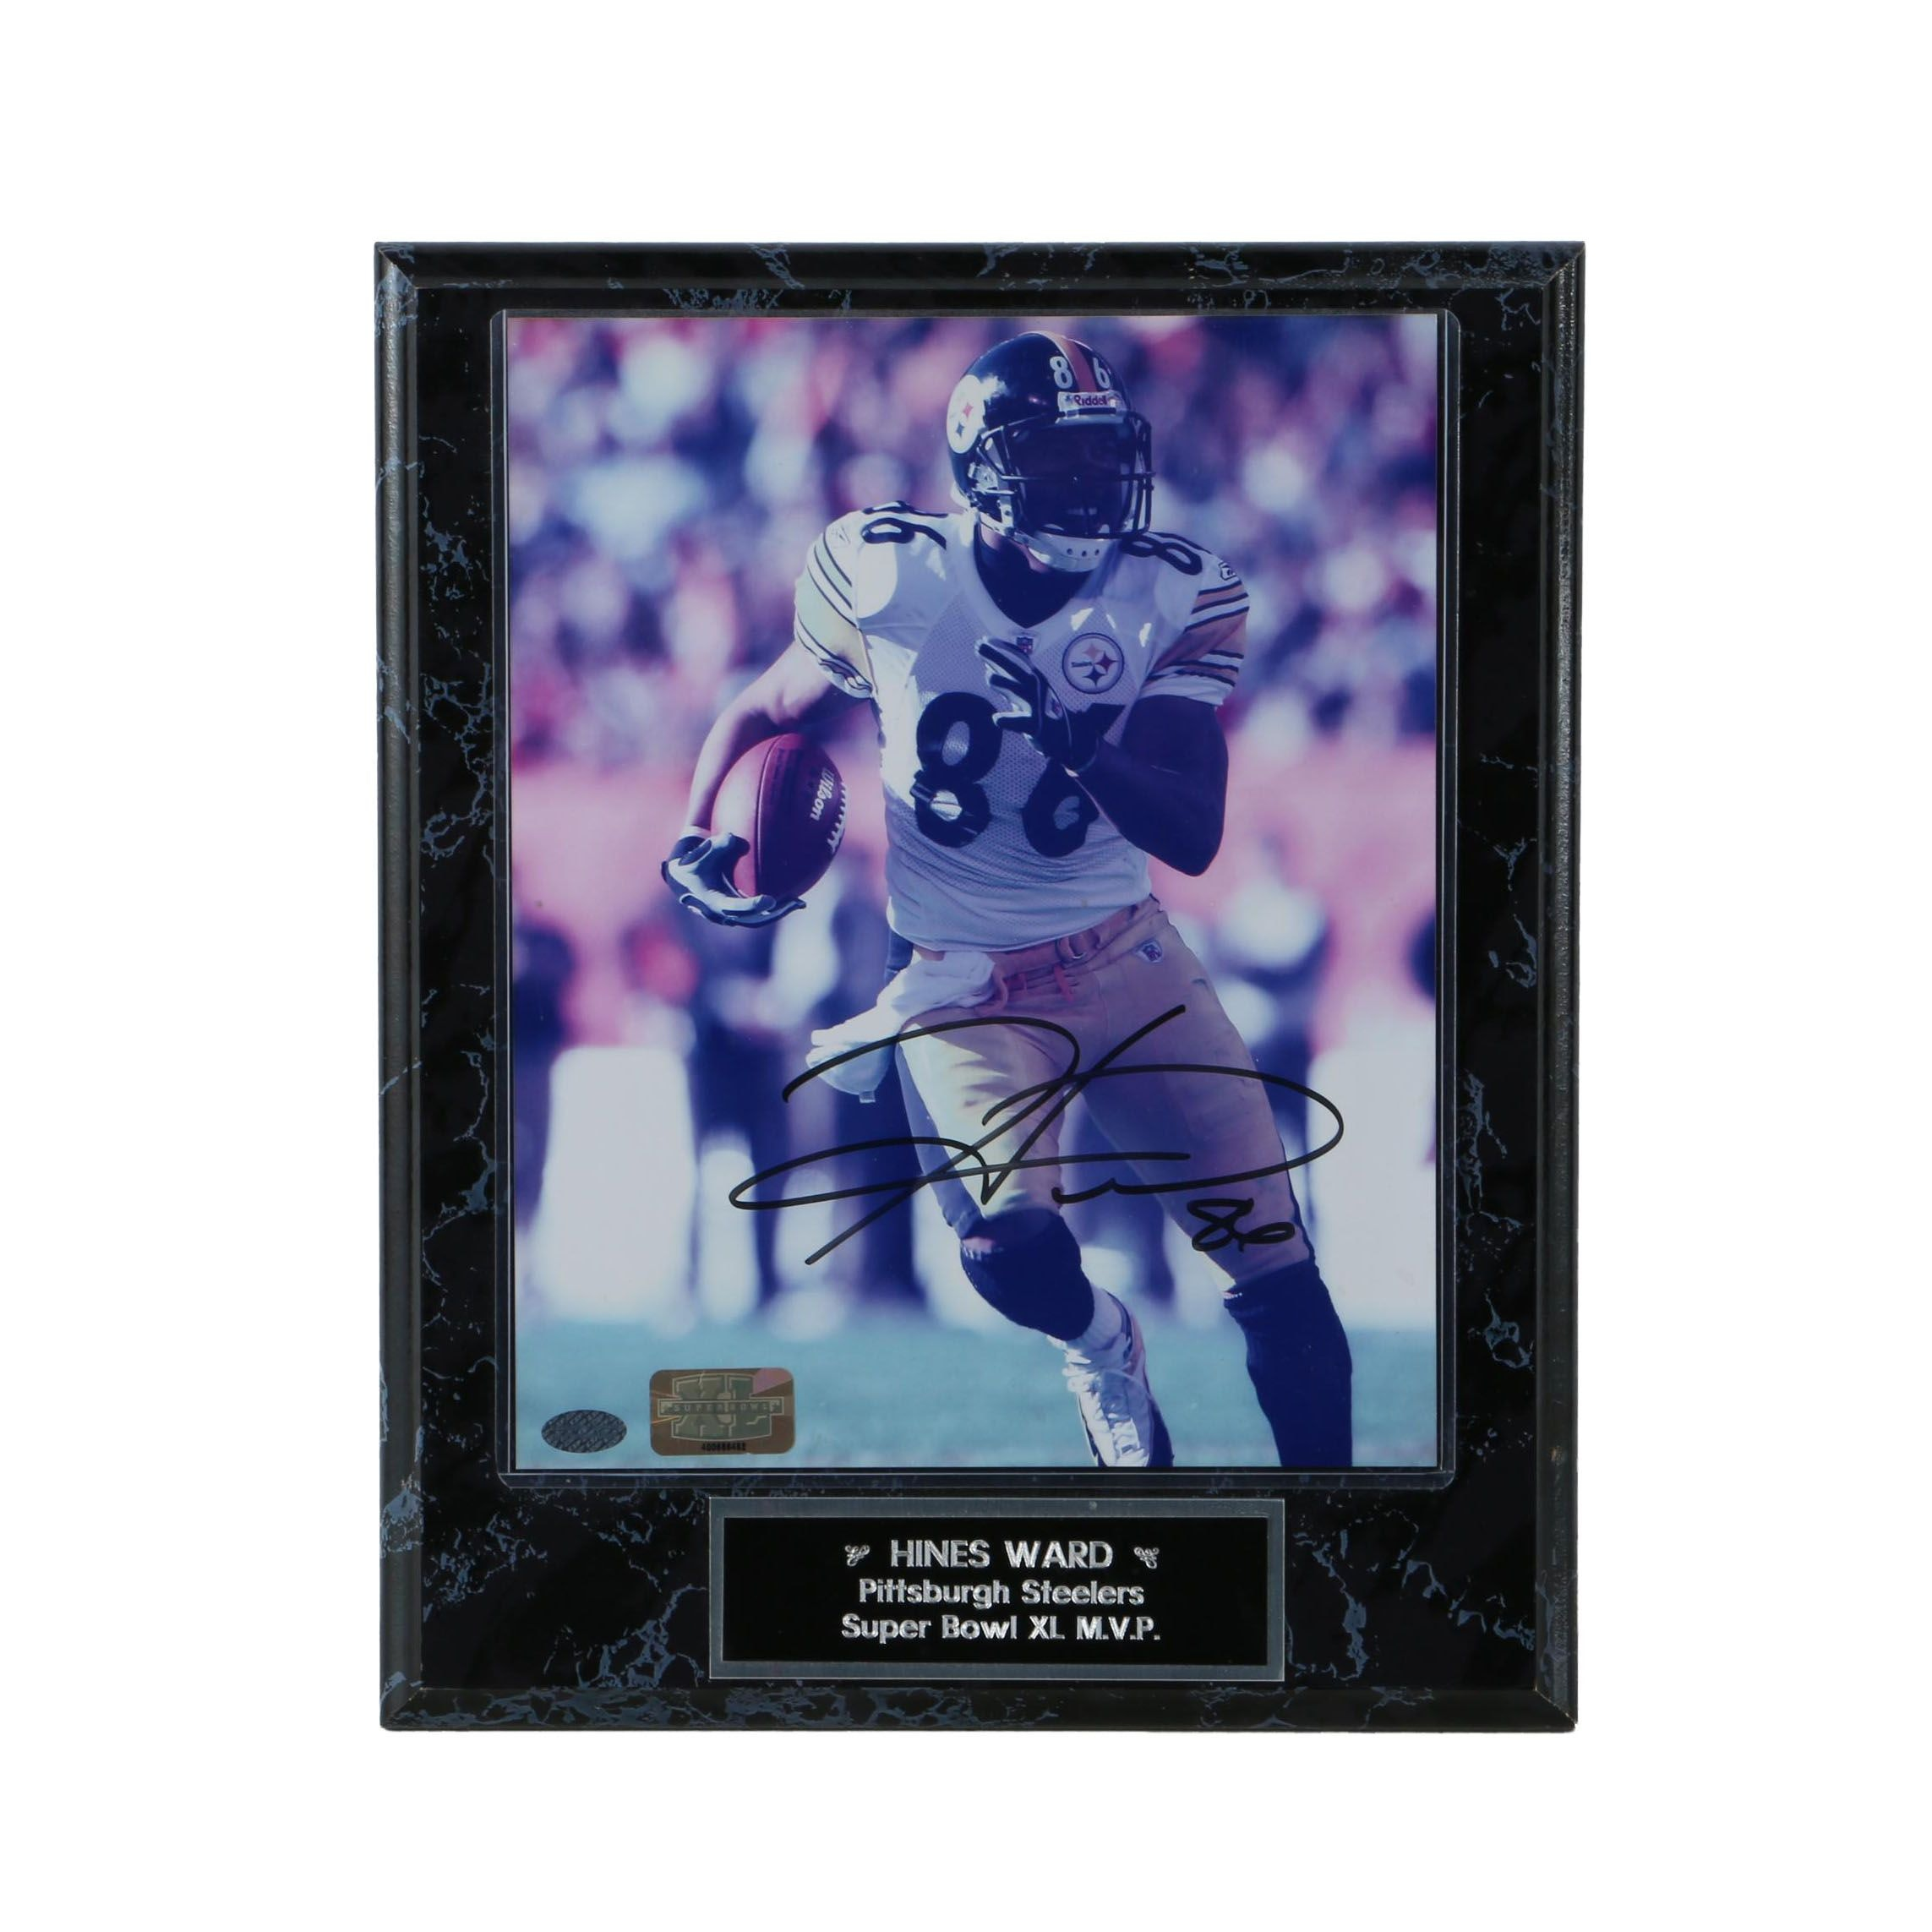 Hines Ward Super Bowl M.V.P. Autographed Plaque